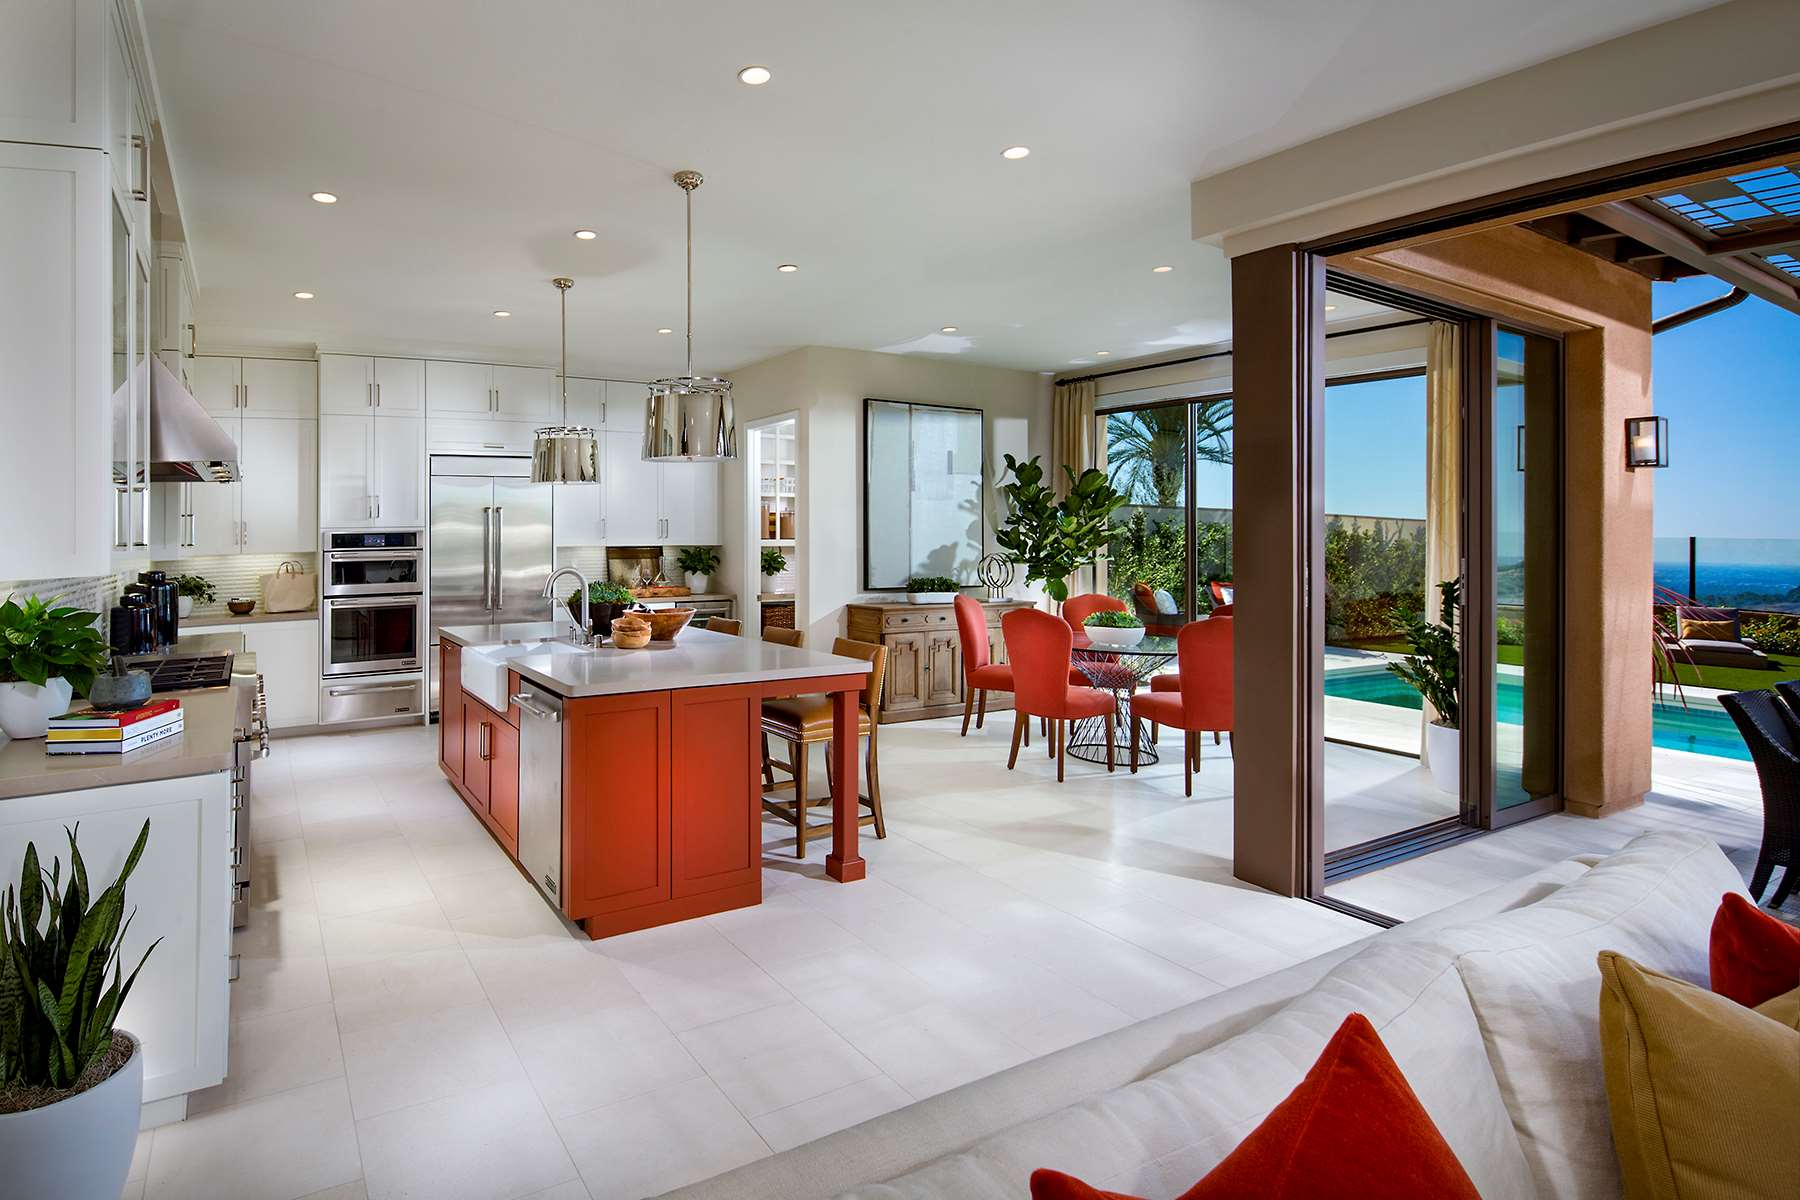 Kitchen at Terra Residence 2 in Irvine